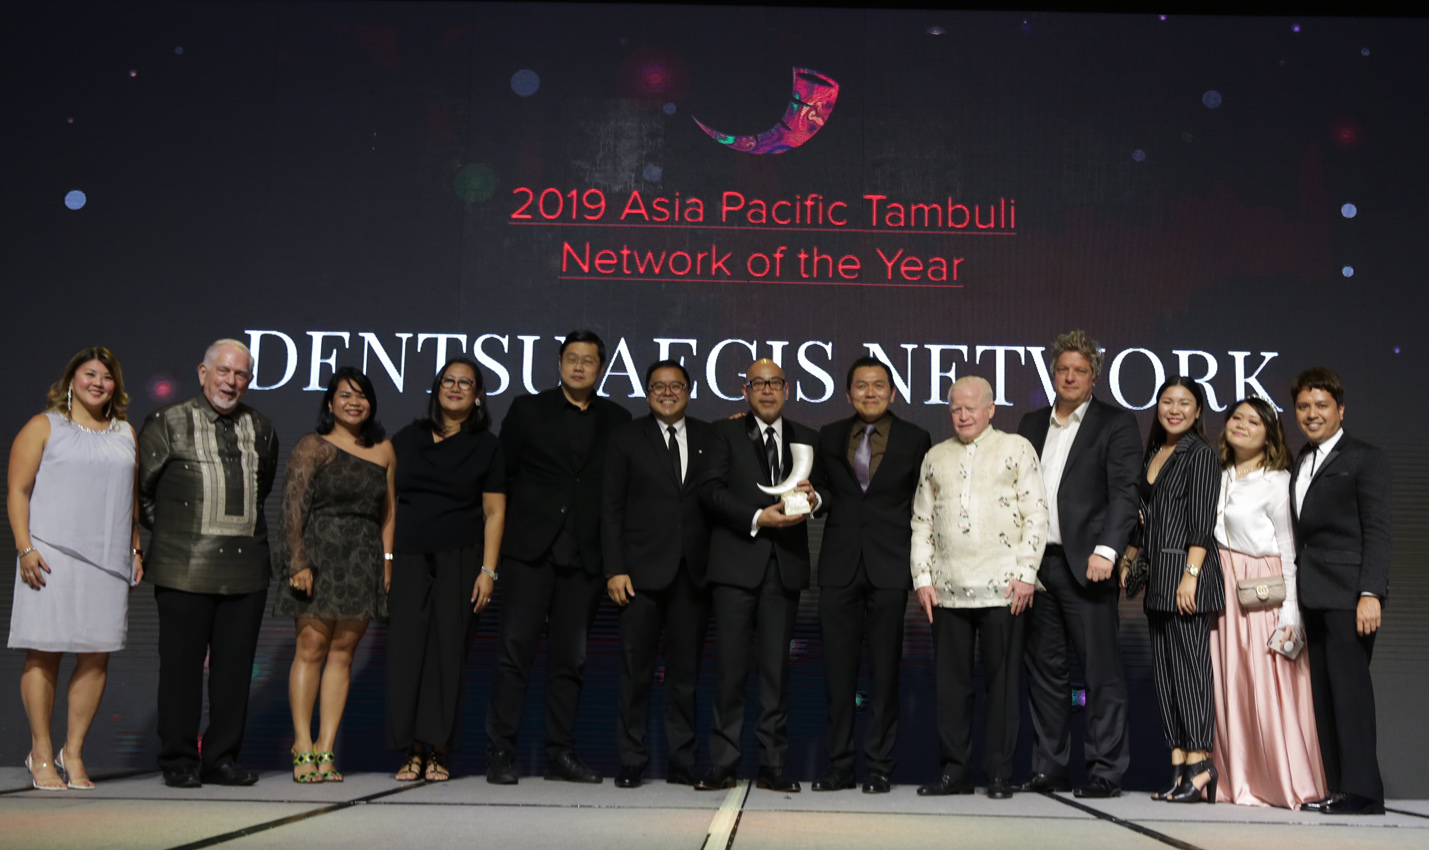 BWM Dentsu Sydney + WhiteGREY win Grand Prix Awards at the 2019 Asia-Pacific Tambuli Awards